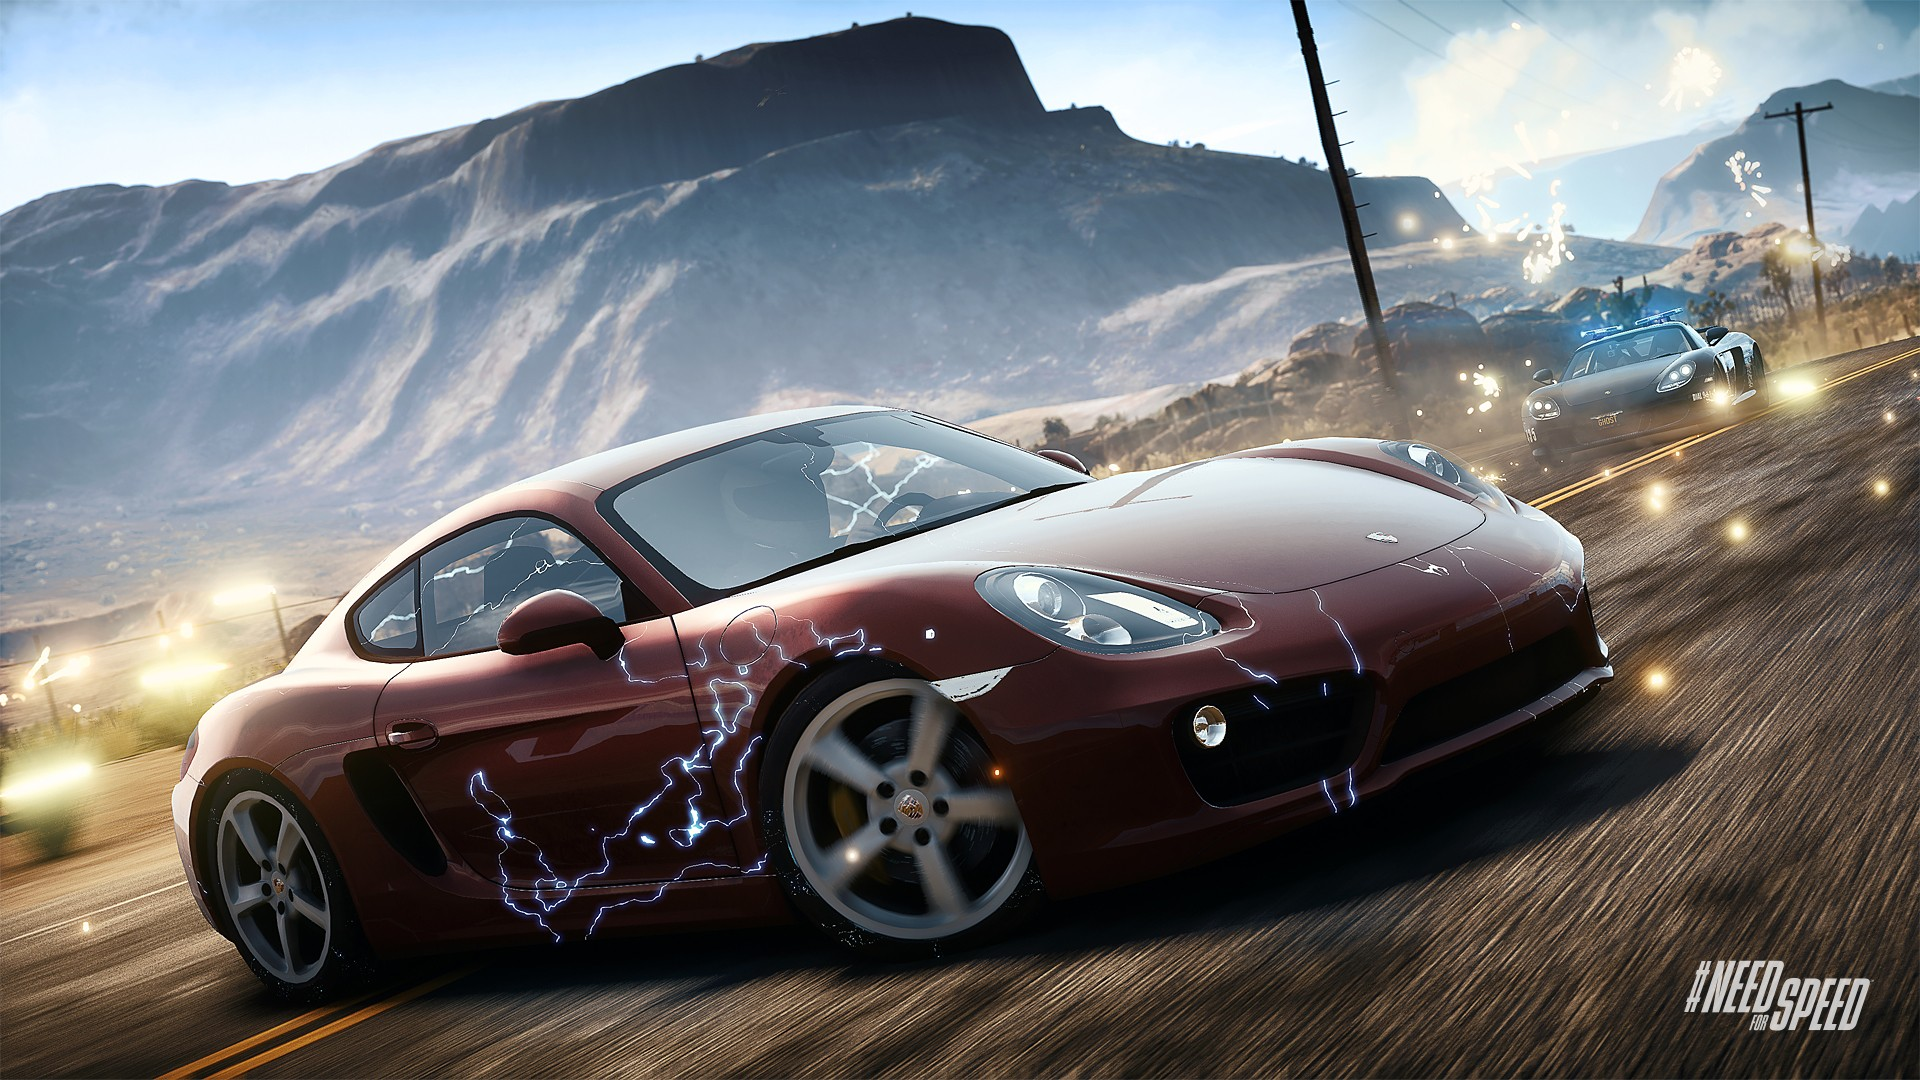 10 Most Popular Need For Speed Wallpaper Full Hd 1080p For: EMP Deployed Full HD Wallpaper And Background Image